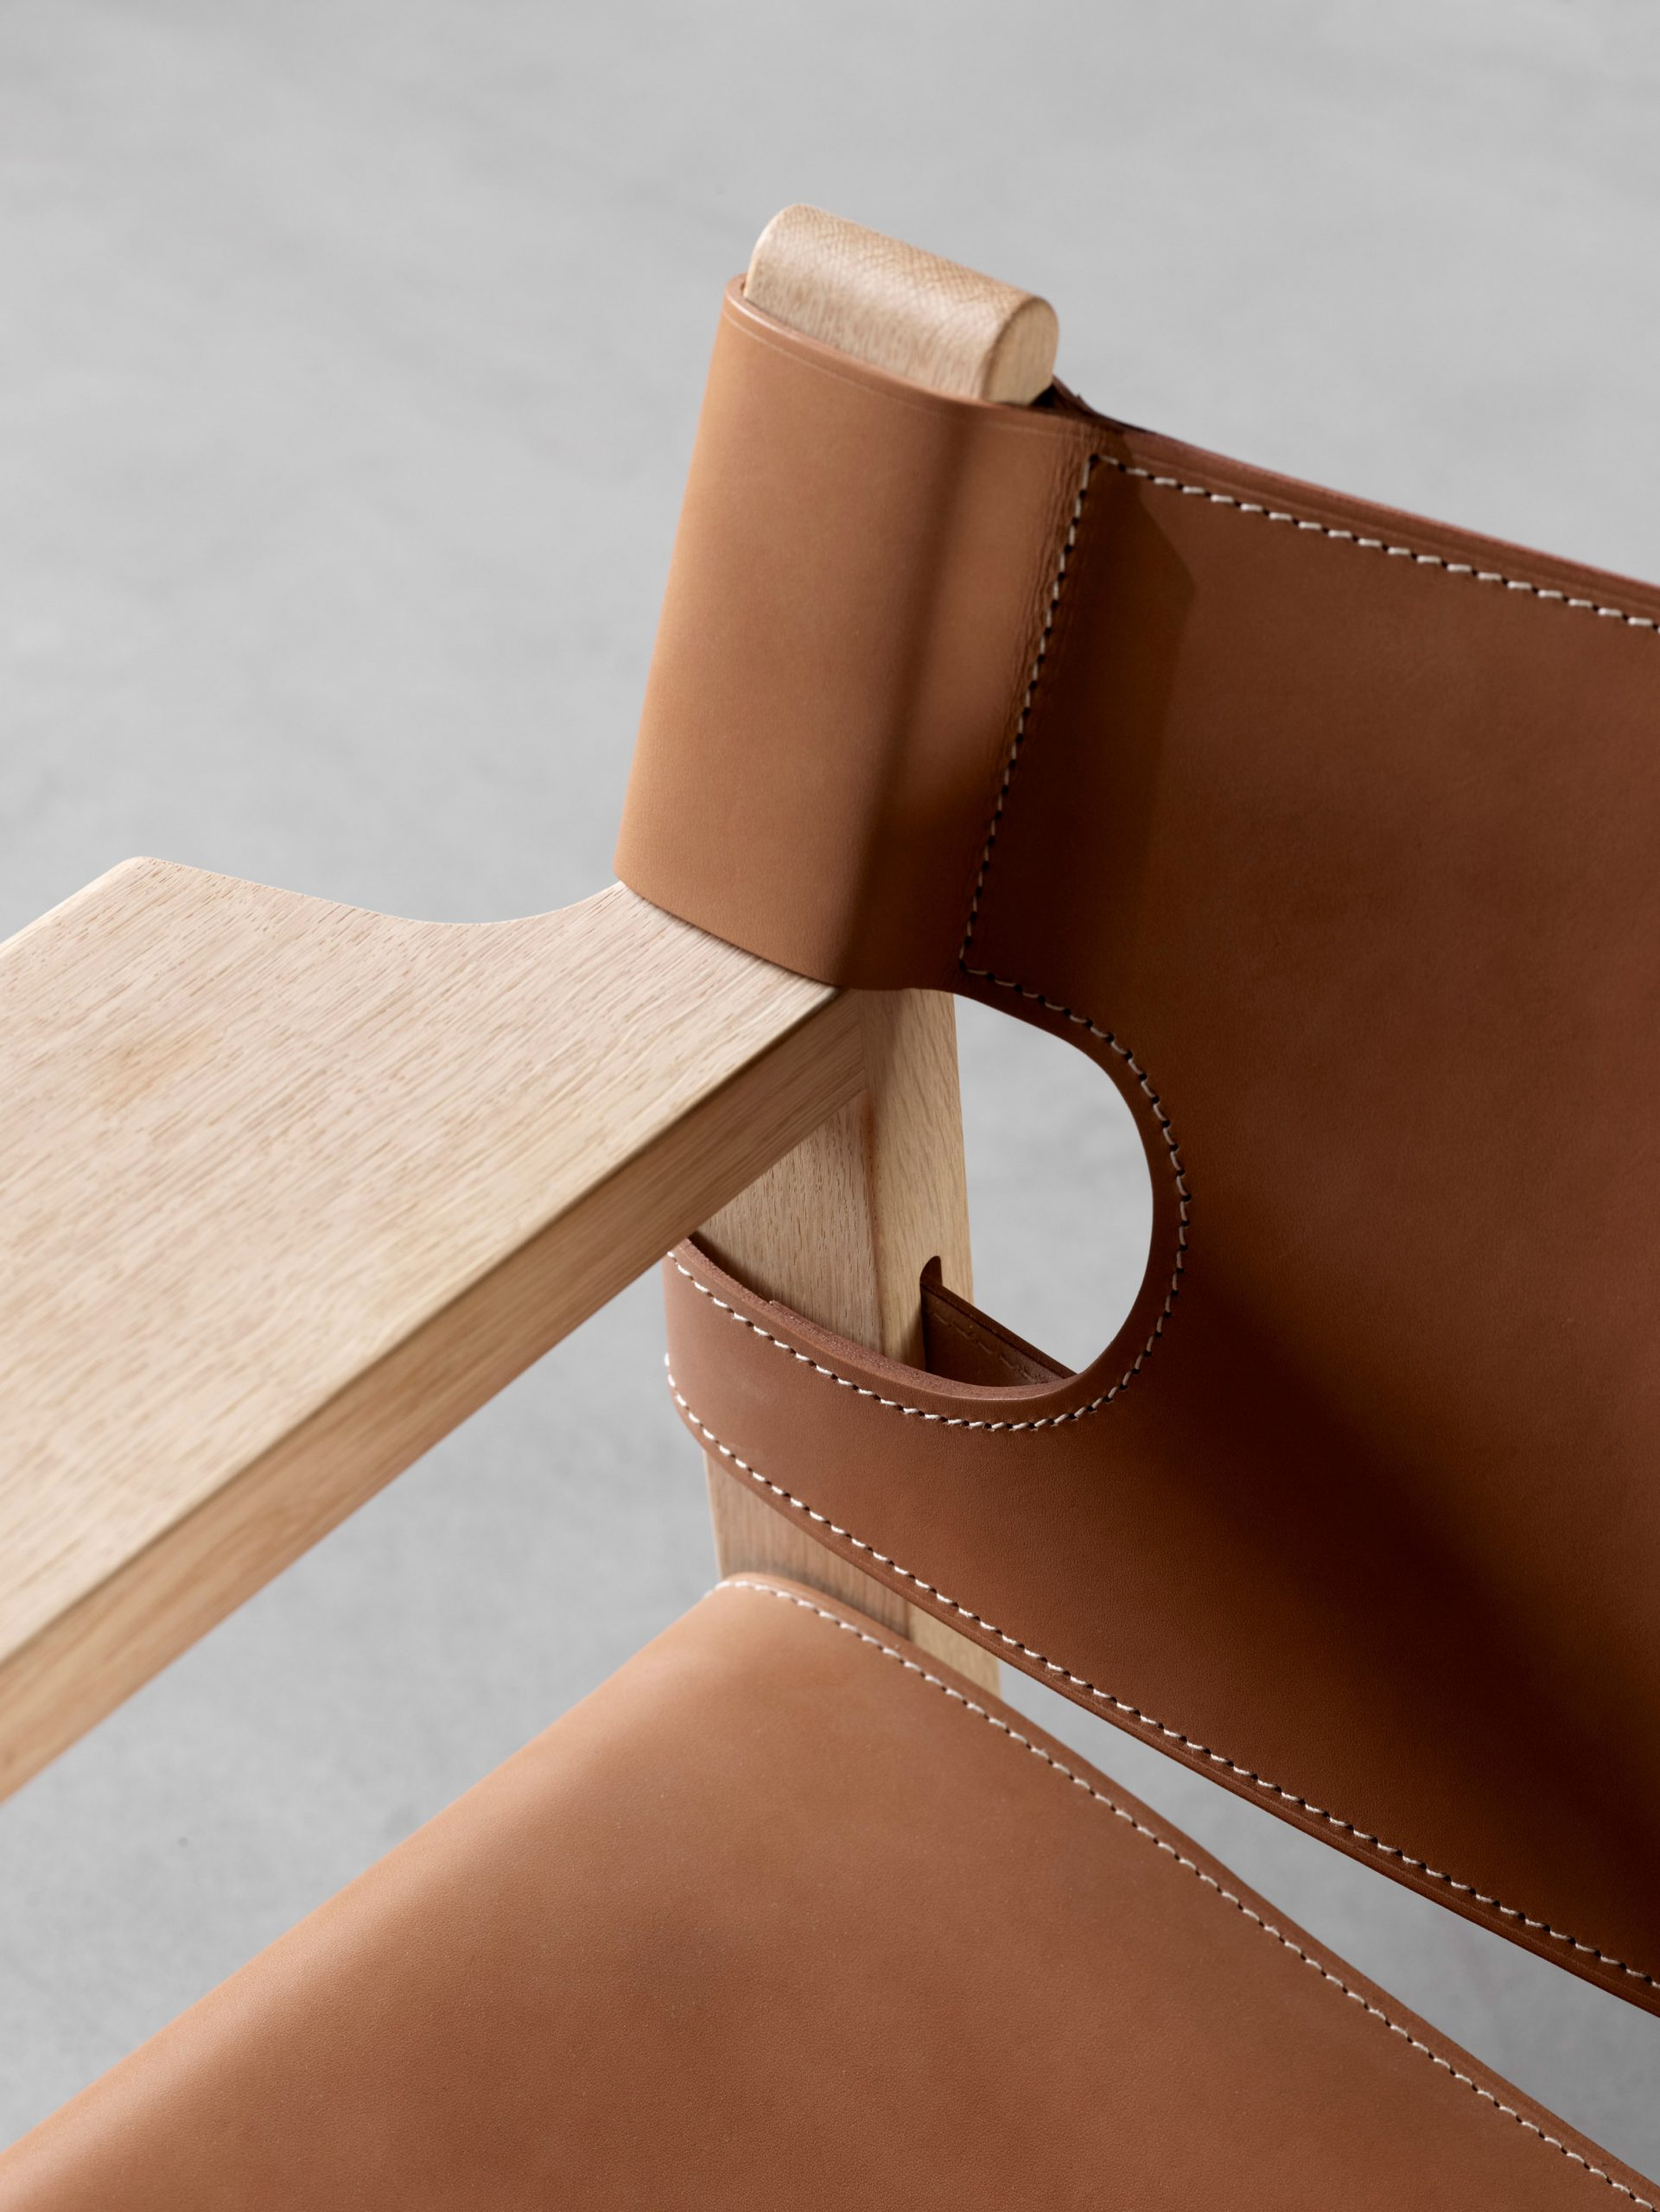 Detail of the Spanish Chair by Børge Mogensen for Danish brand Fredericia